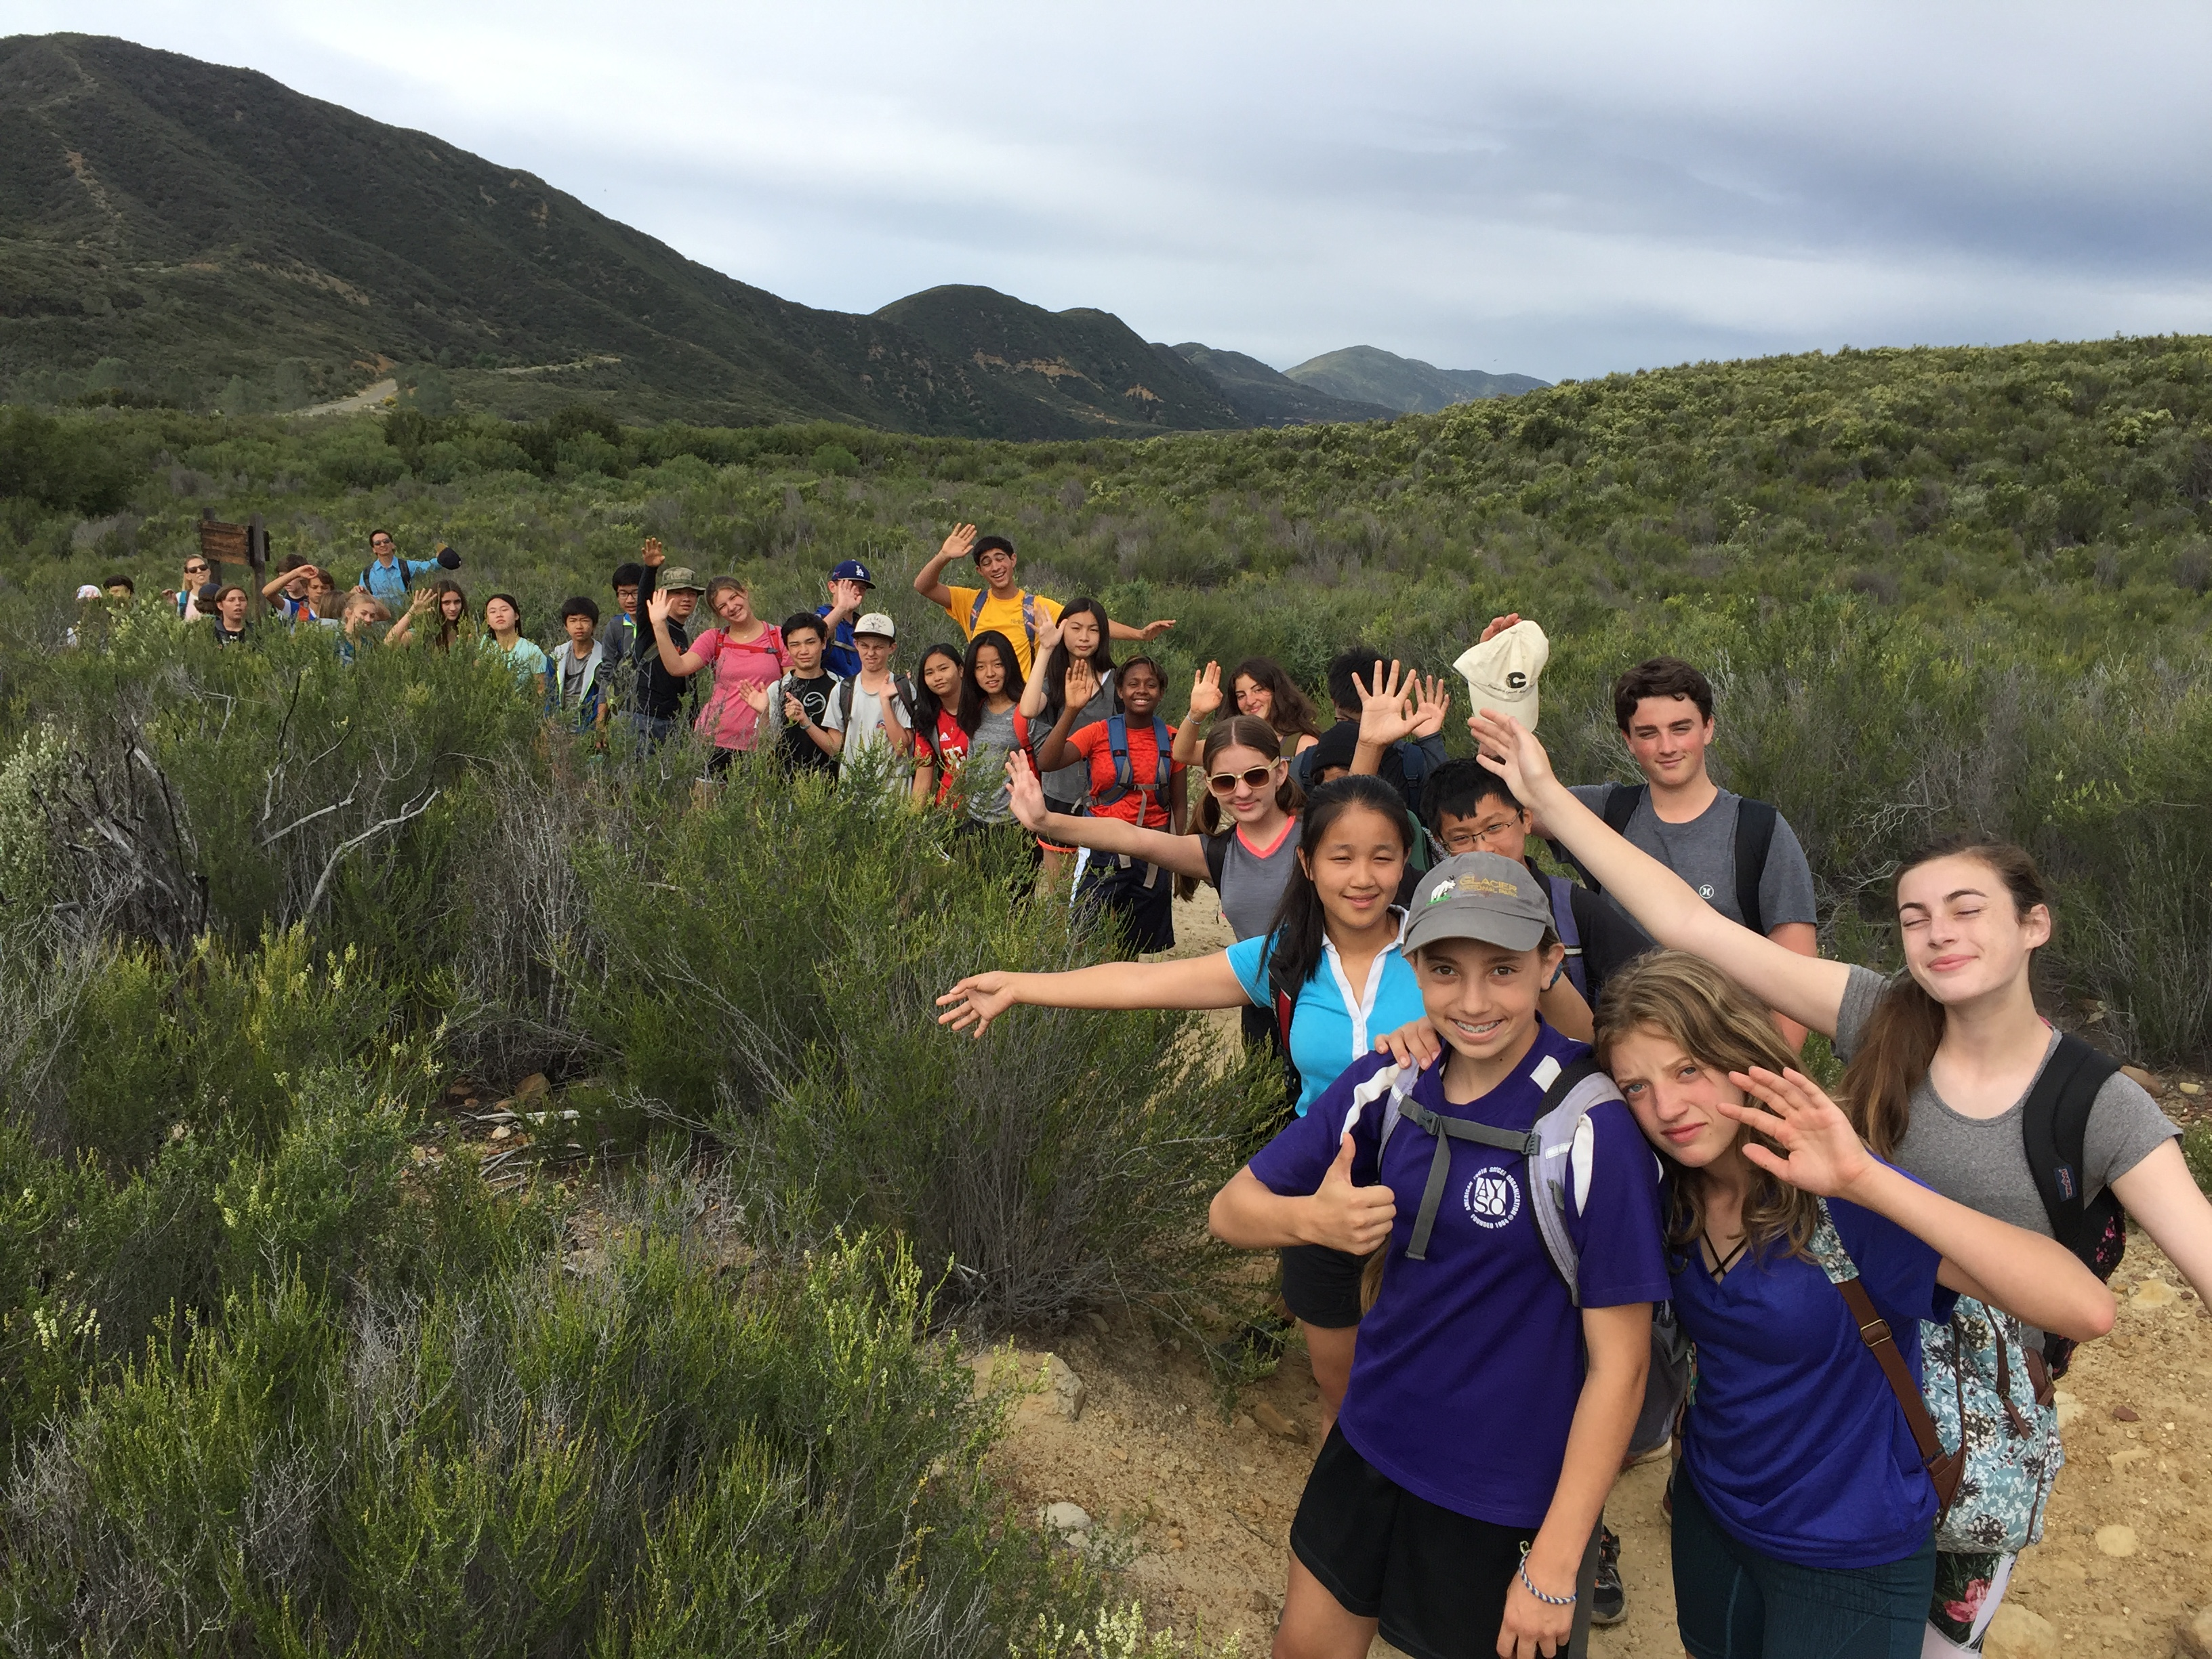 Class Hikes are Coming